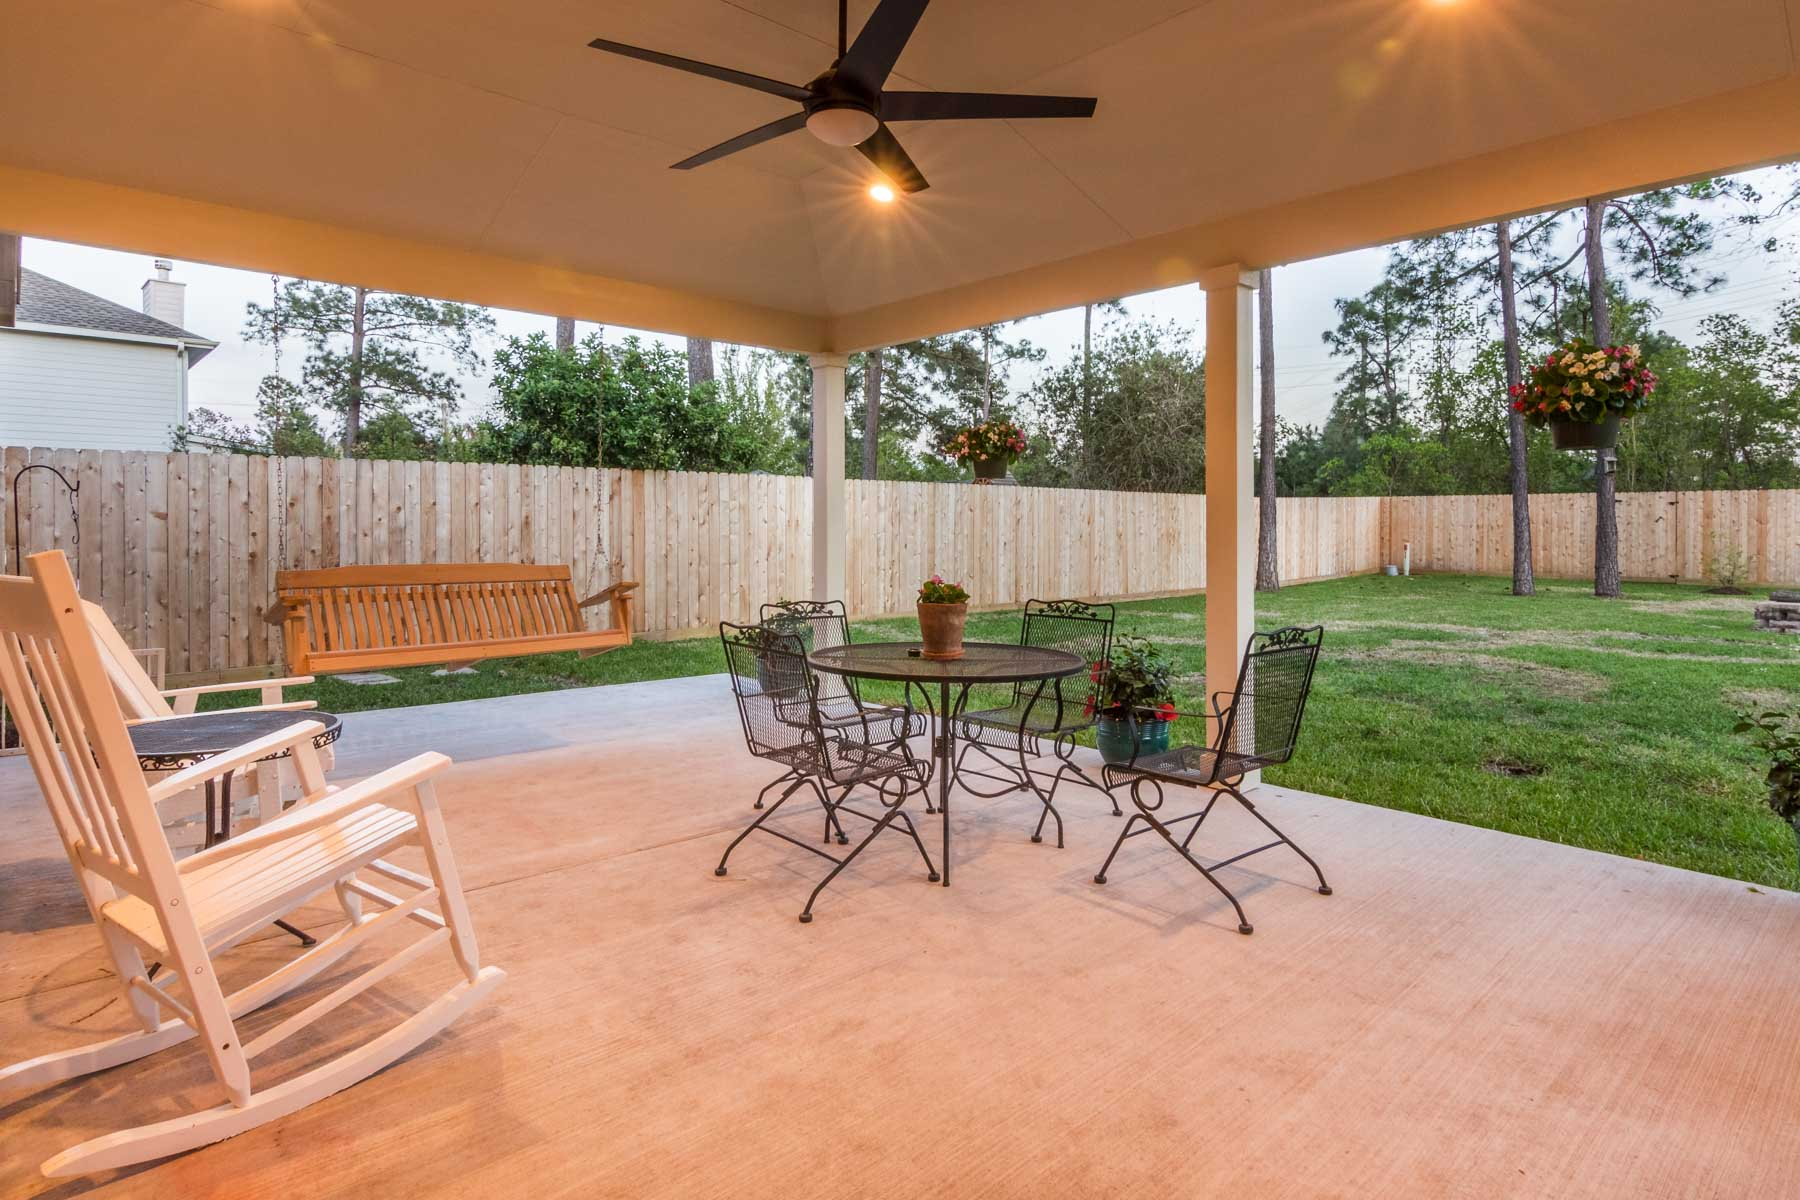 Hip Roof Patio Cover Hhi Patio Covers